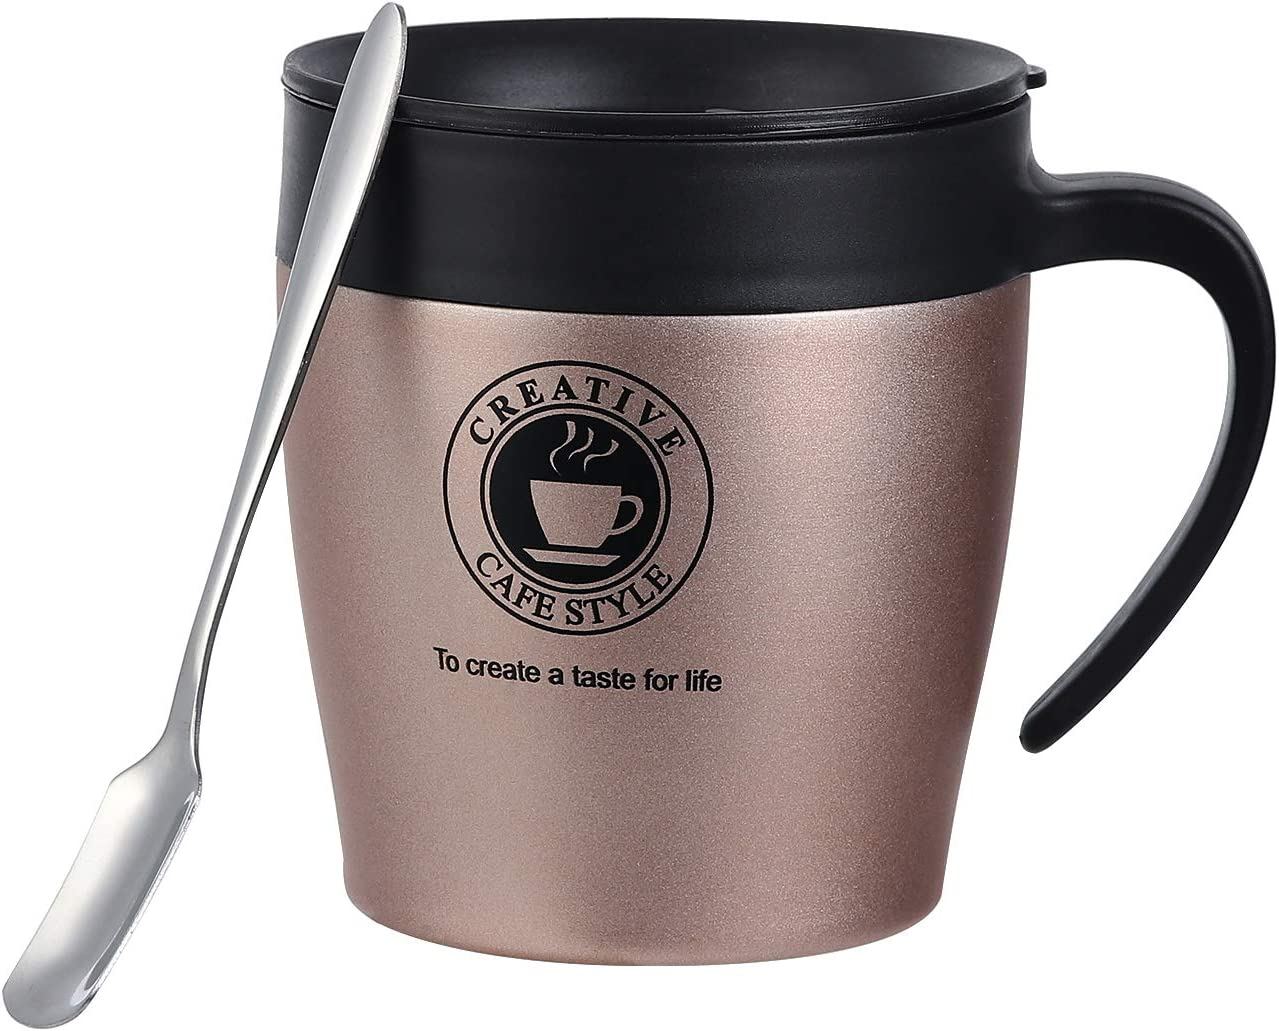 12 OZ Stainless Steel Insulated Coffee Mug Cup with Lid, Double Wall Vacuum Travel Mug with Handle, Splash Proof BPA-Free Press-In Lid with Sliding Cover, Stainless Steel Spoon (Champagne, 1 Pack)